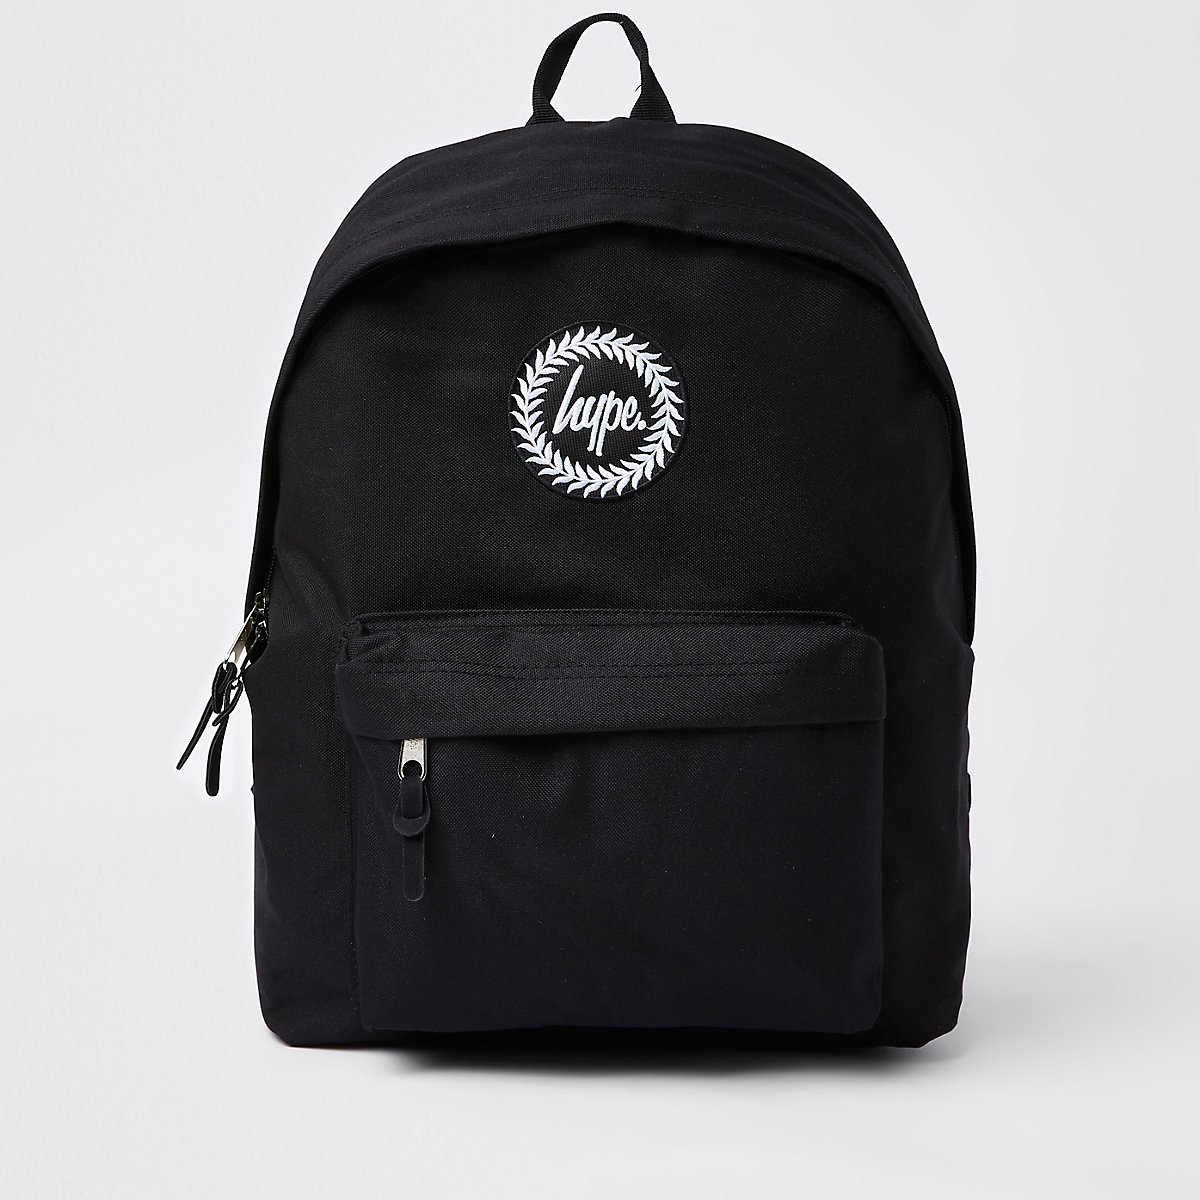 8865e7579a21 Hype black backpack - Backpacks   Rucksacks - Bags - men